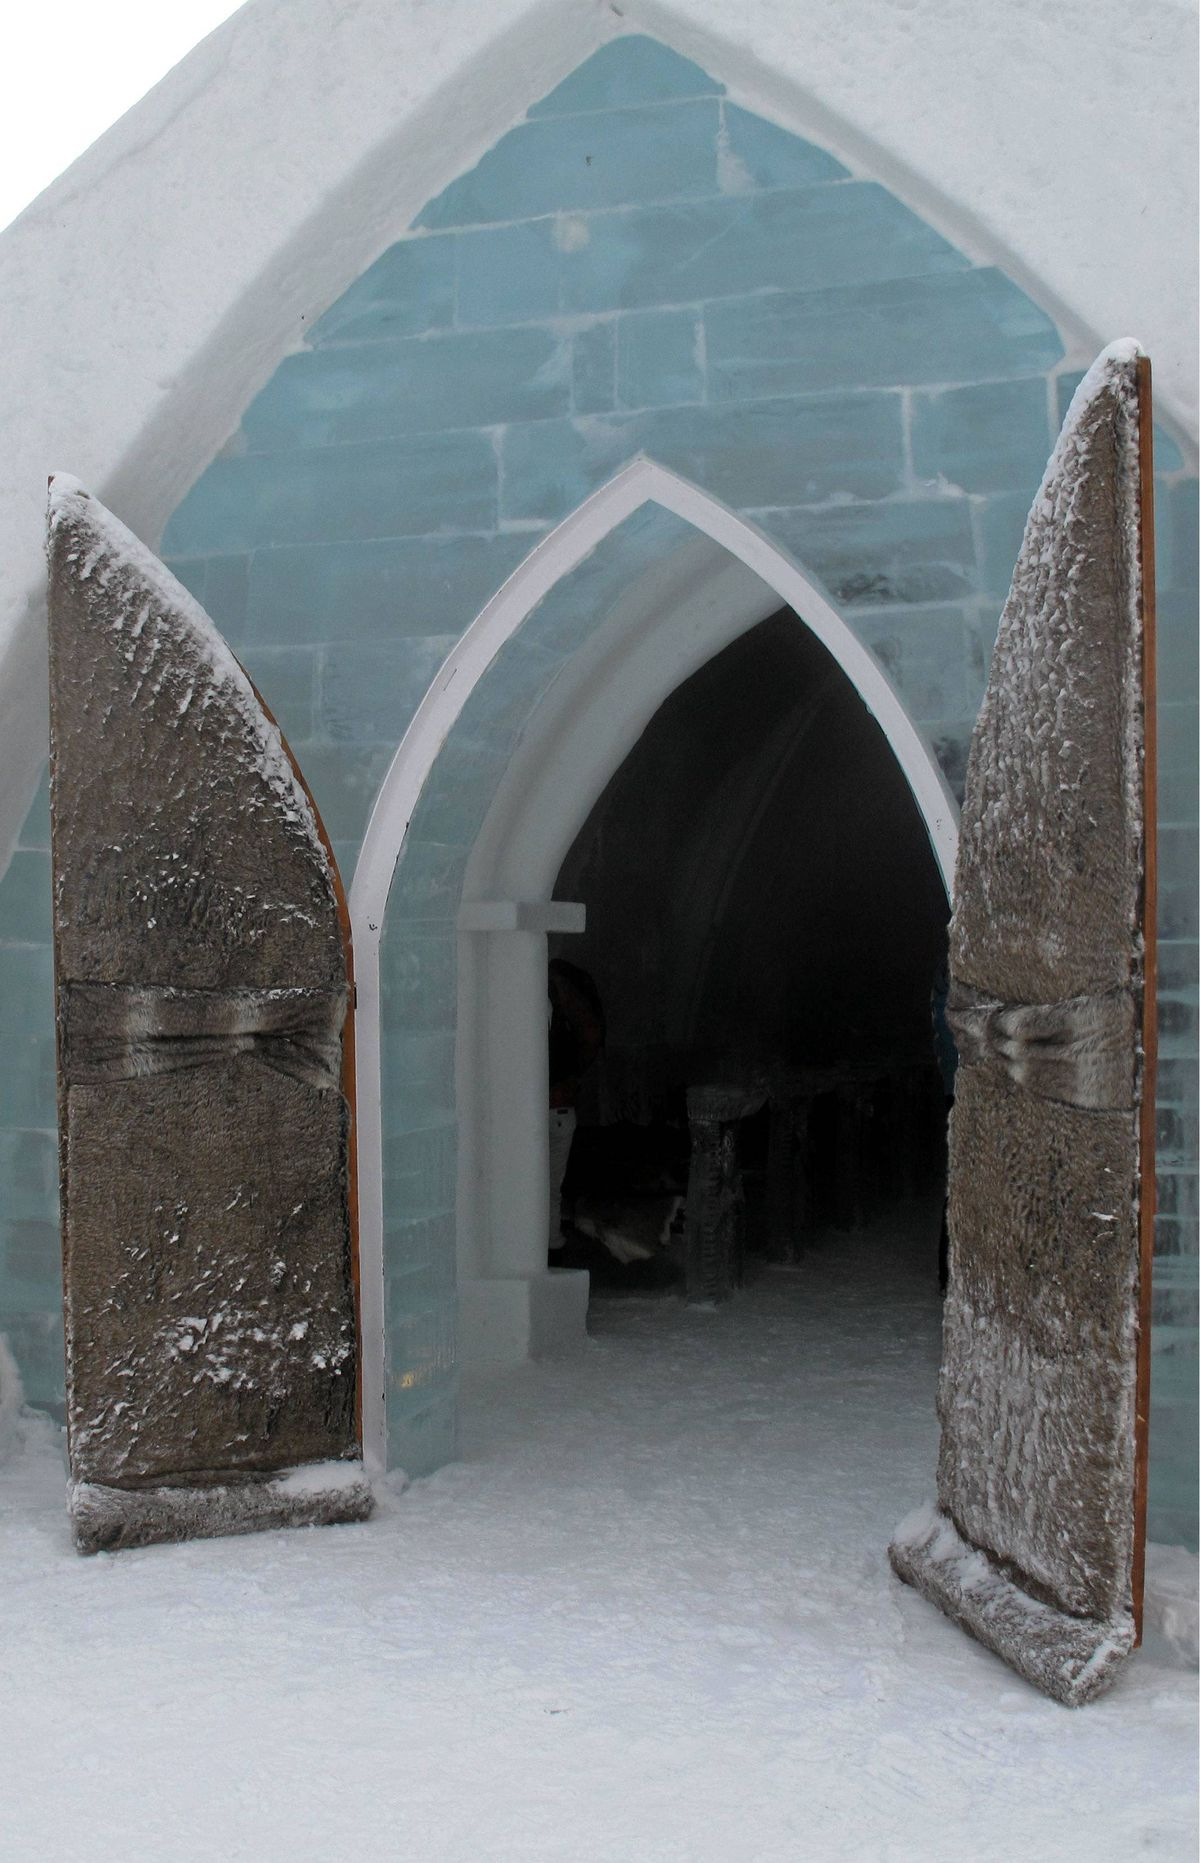 Going to the chapel and we're going to get married... Designers in Quebec City are fashioning bridal gowns specifically for ice hotel weddings. Fur stoles are a must.